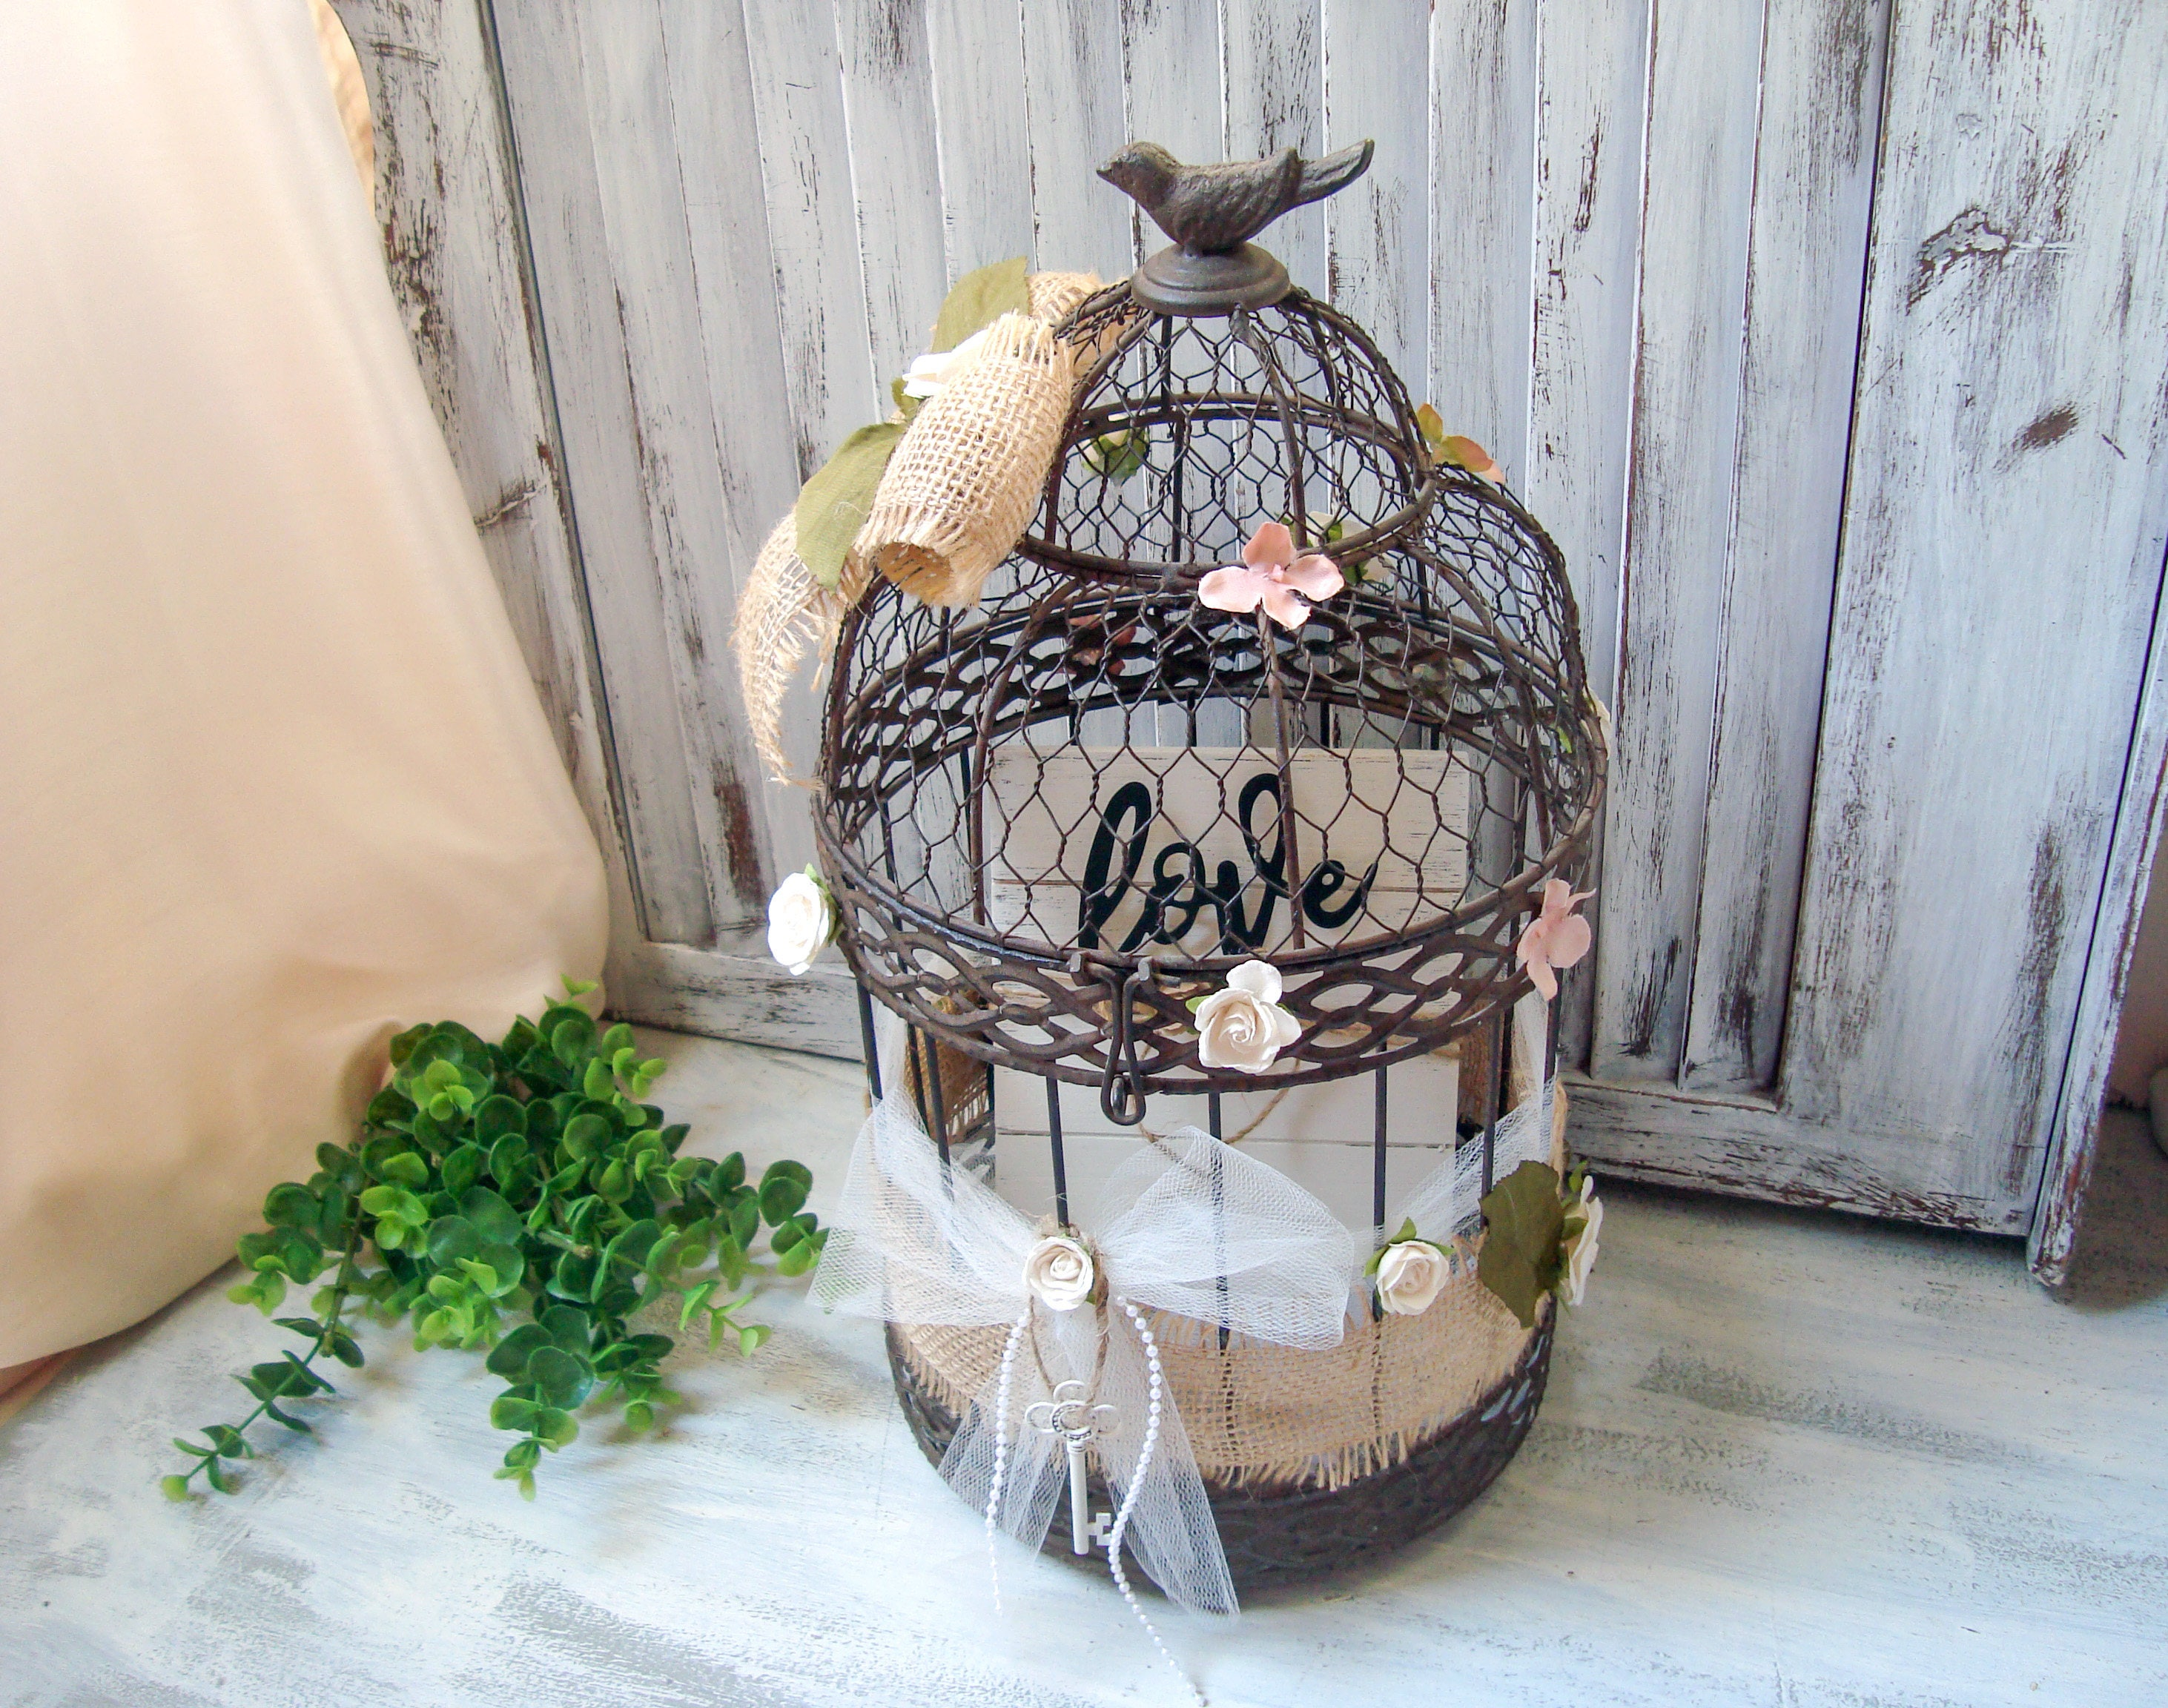 Shabby Chic Decorative Bird Cage Wedding Card Box Rustic Metal Ornate With